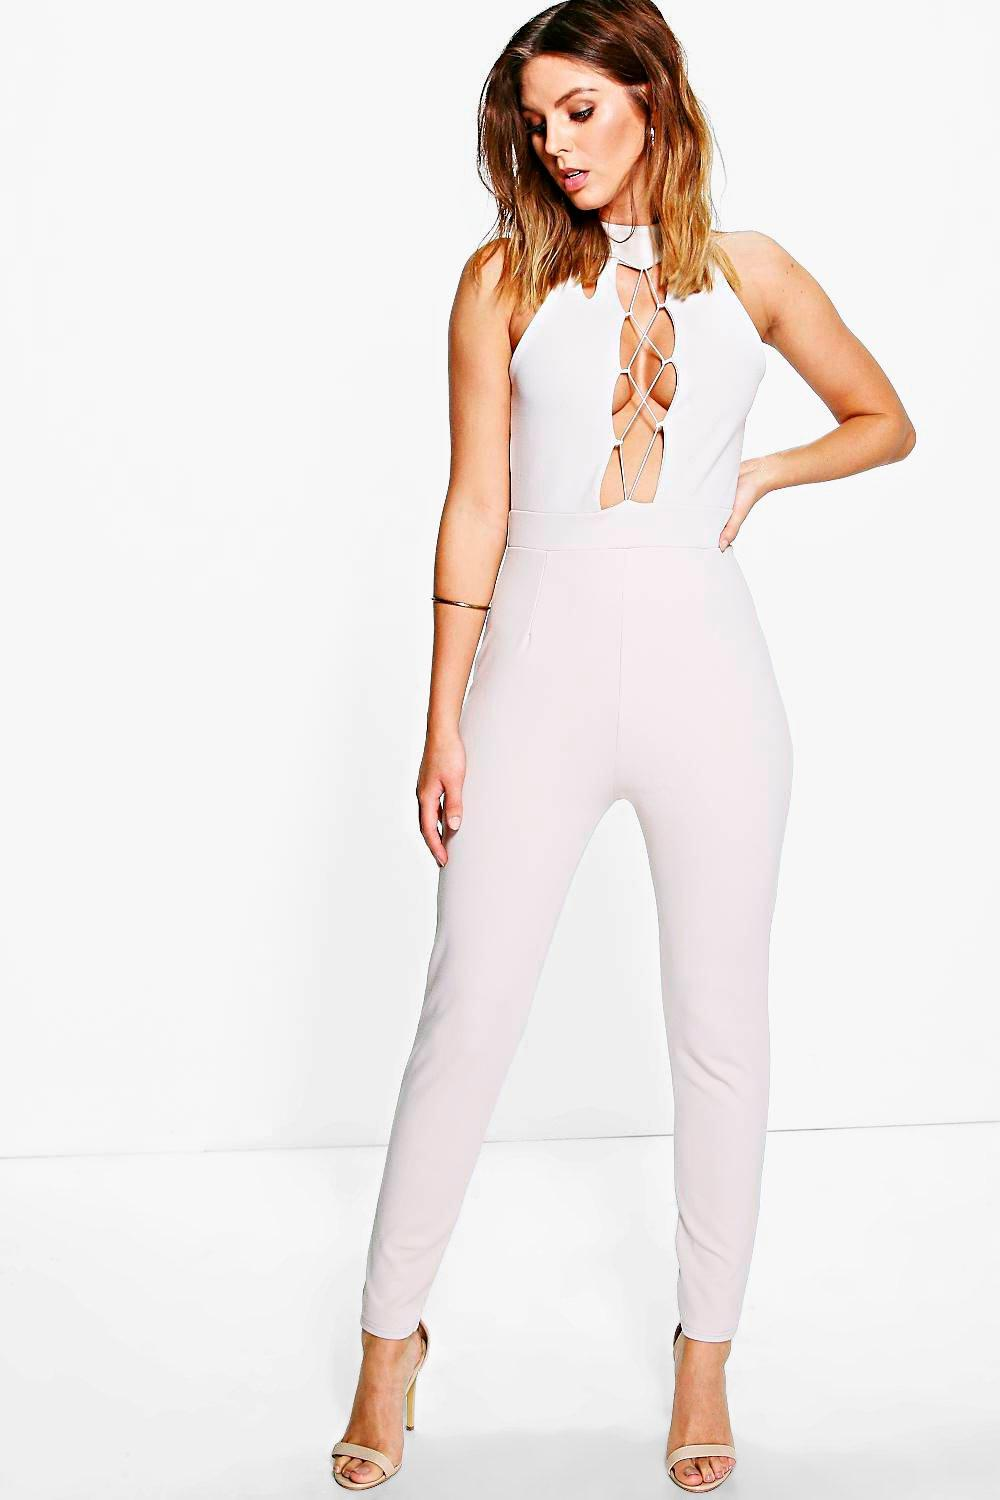 Lola High Neck Lace Up Front Skinny Leg Jumpsuit